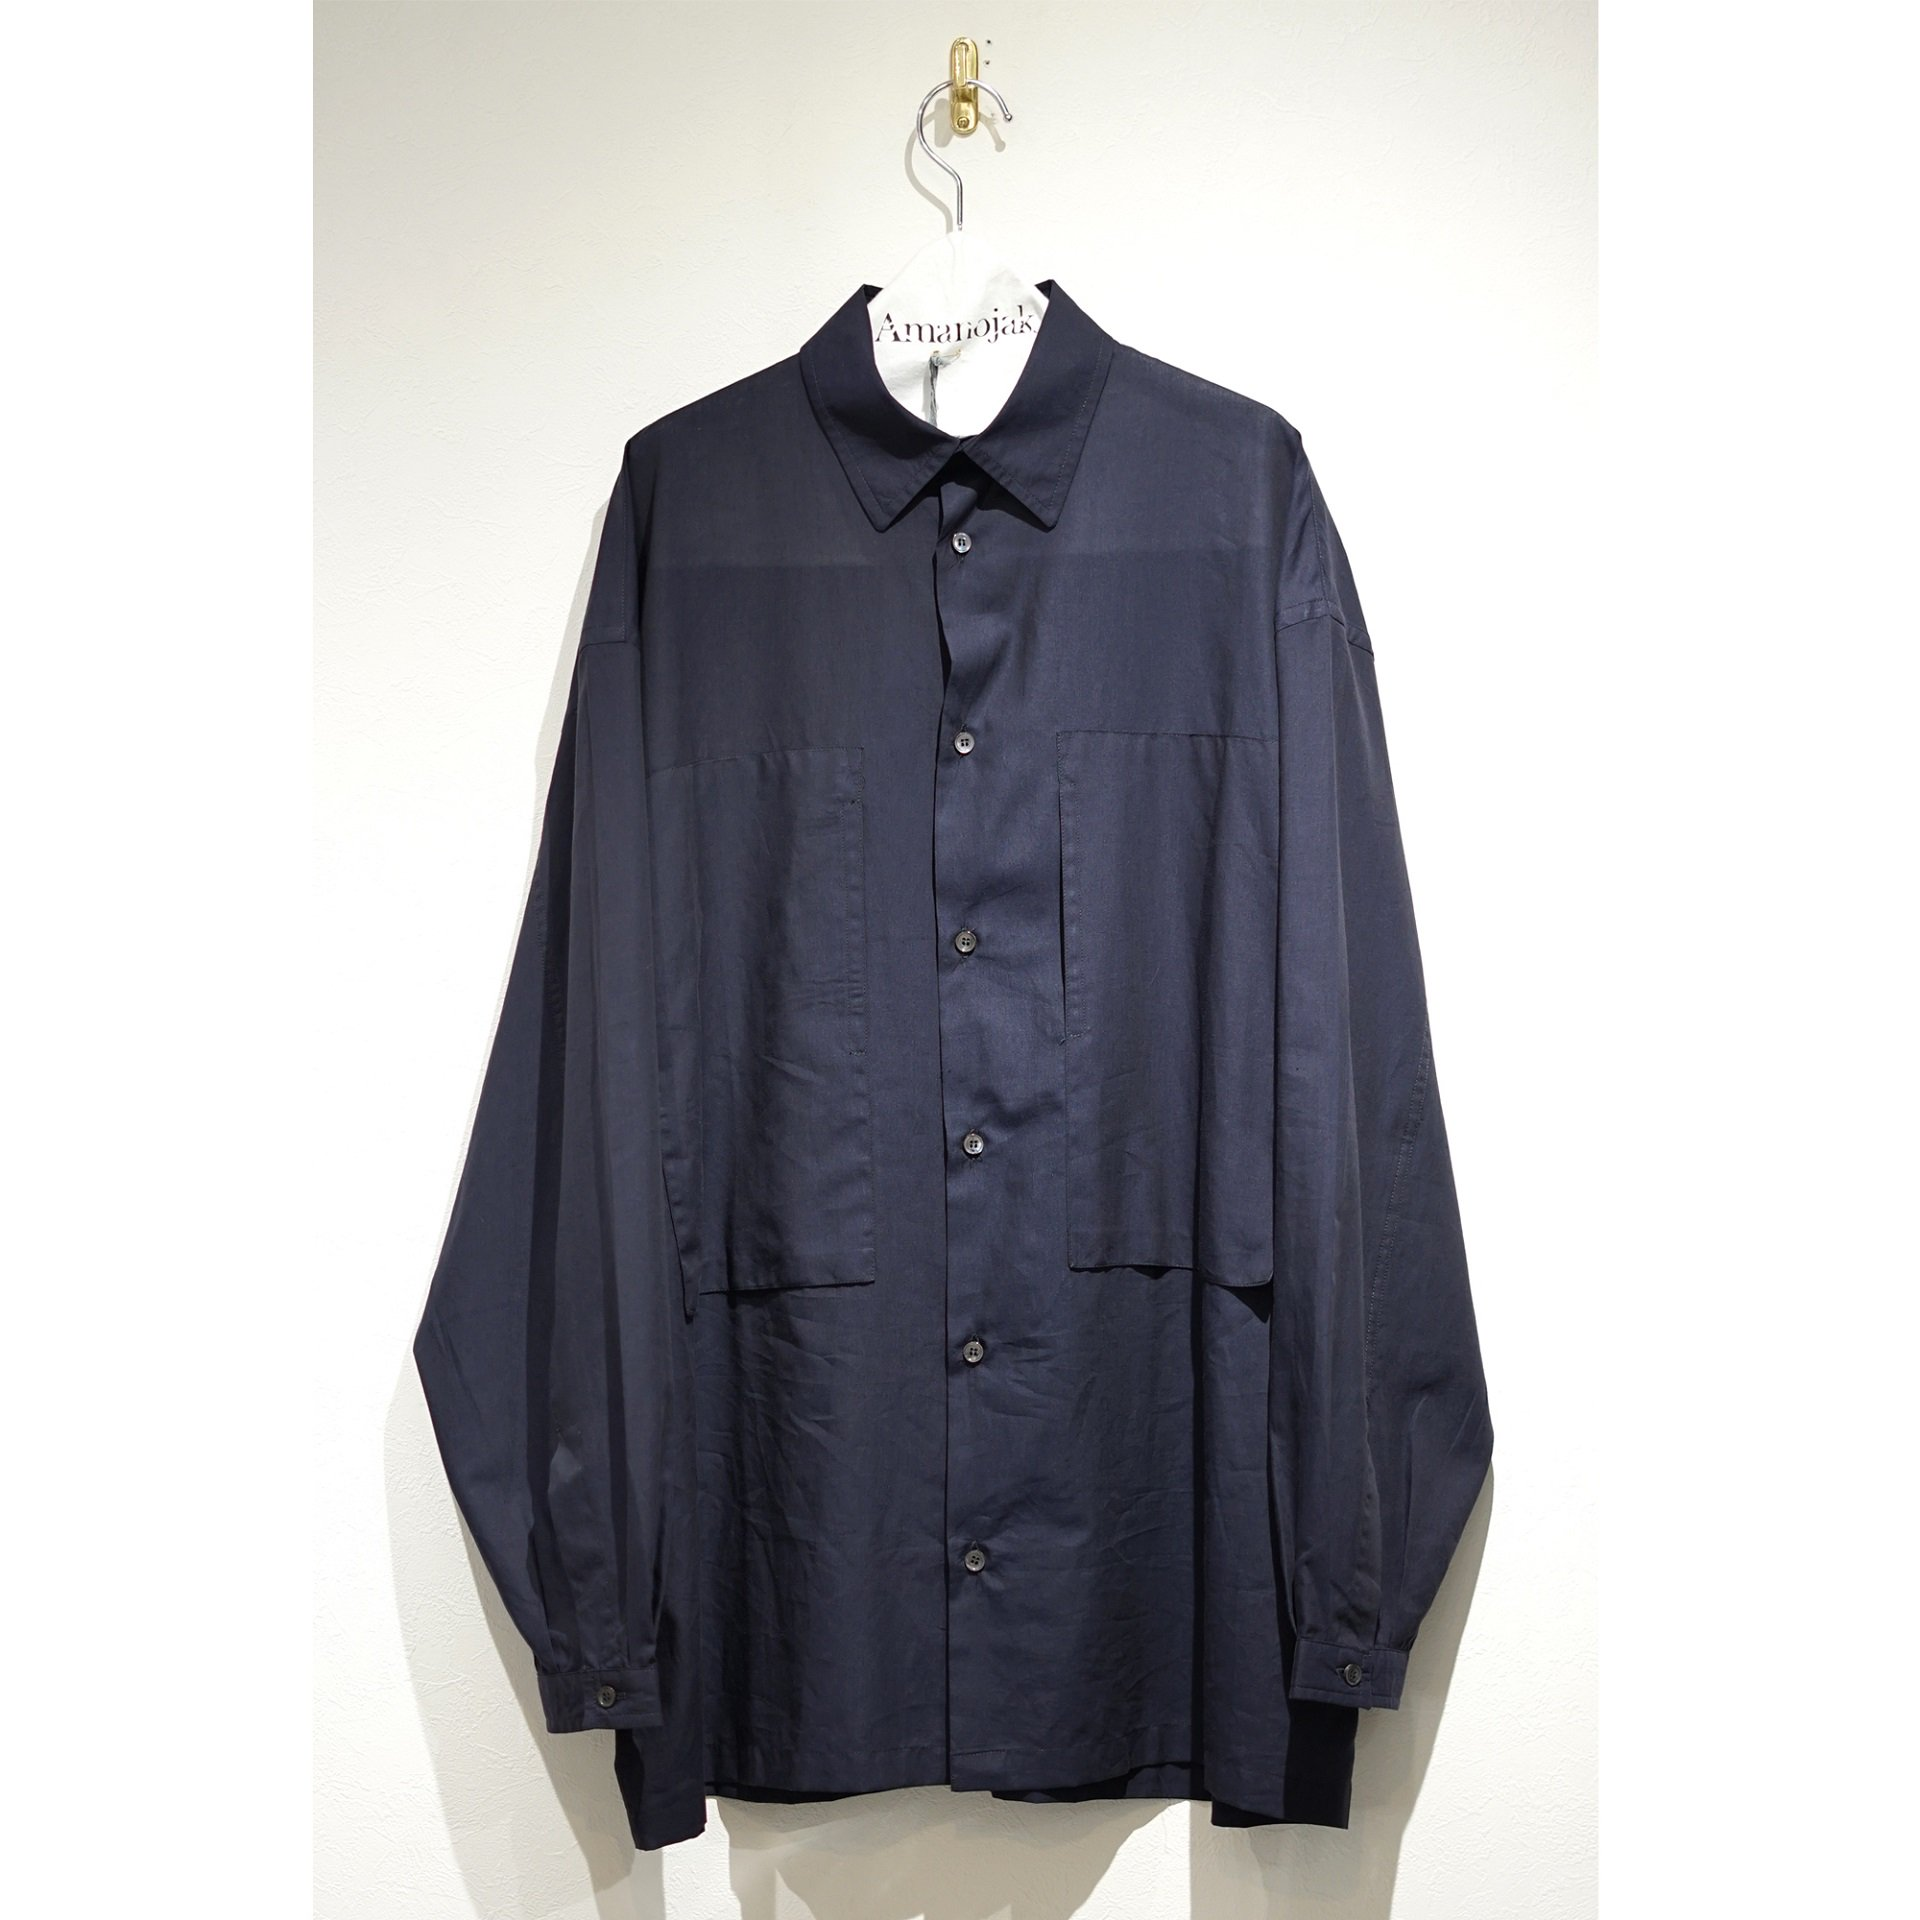 E.TAUTZ-CORE LINEMAN SHIRT COTTON POPLIN